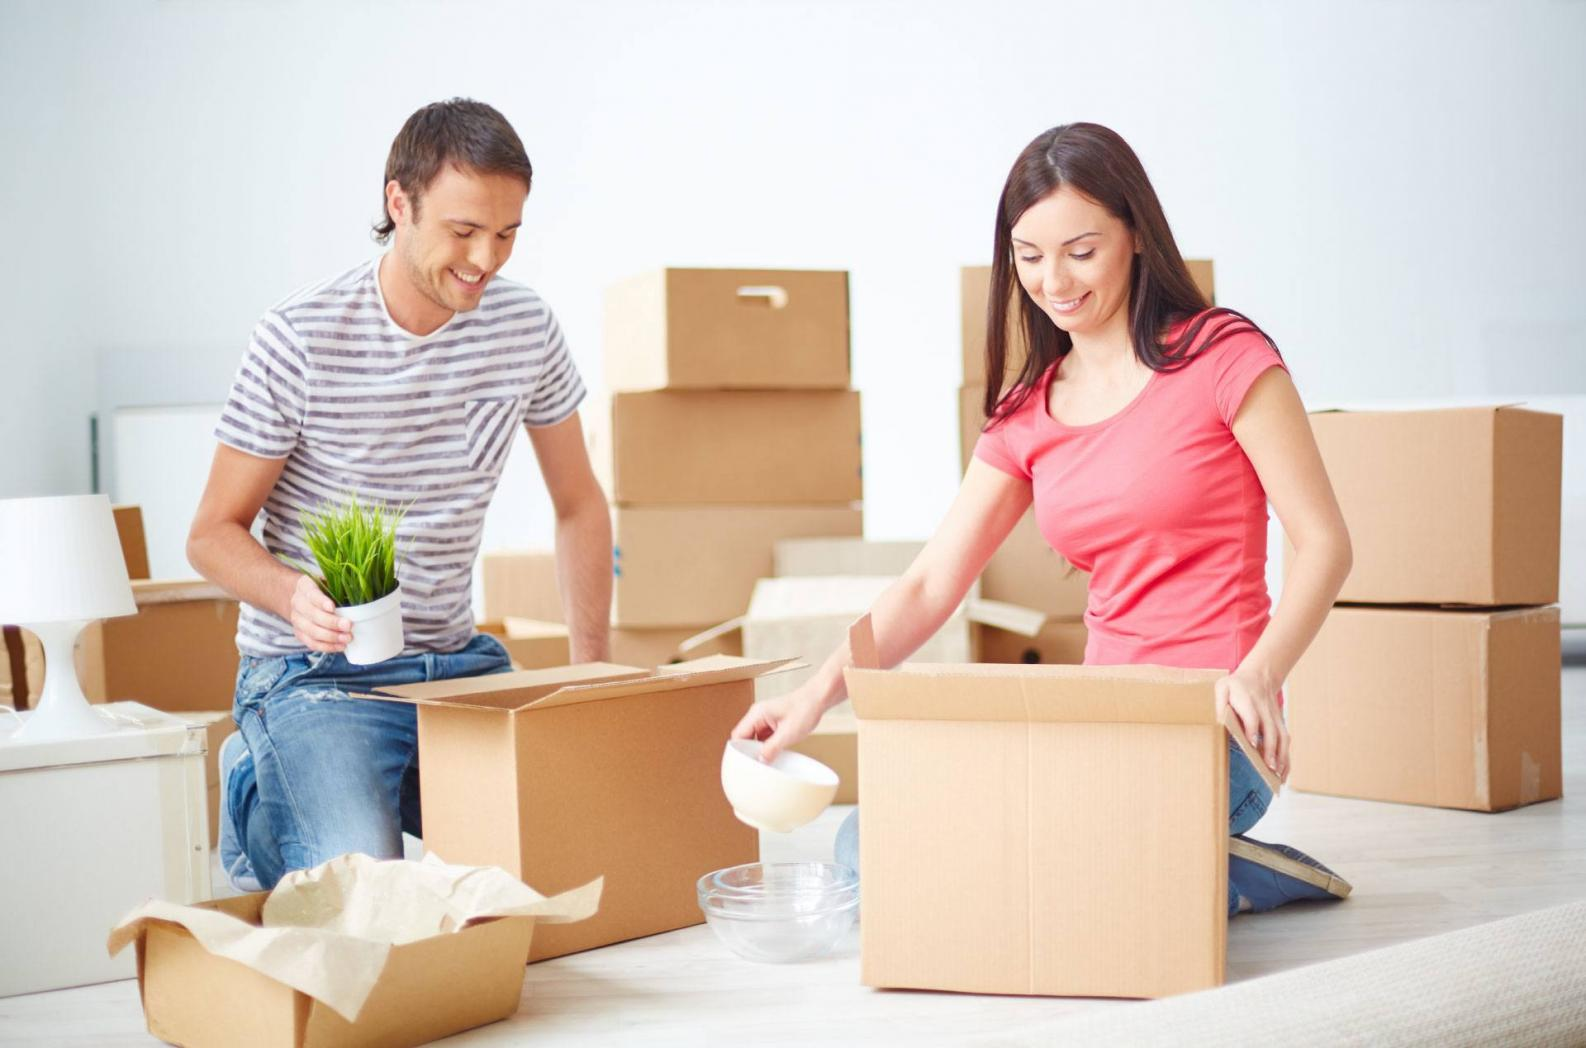 Choosing the best removalist services on the Gold Coast of Queensland